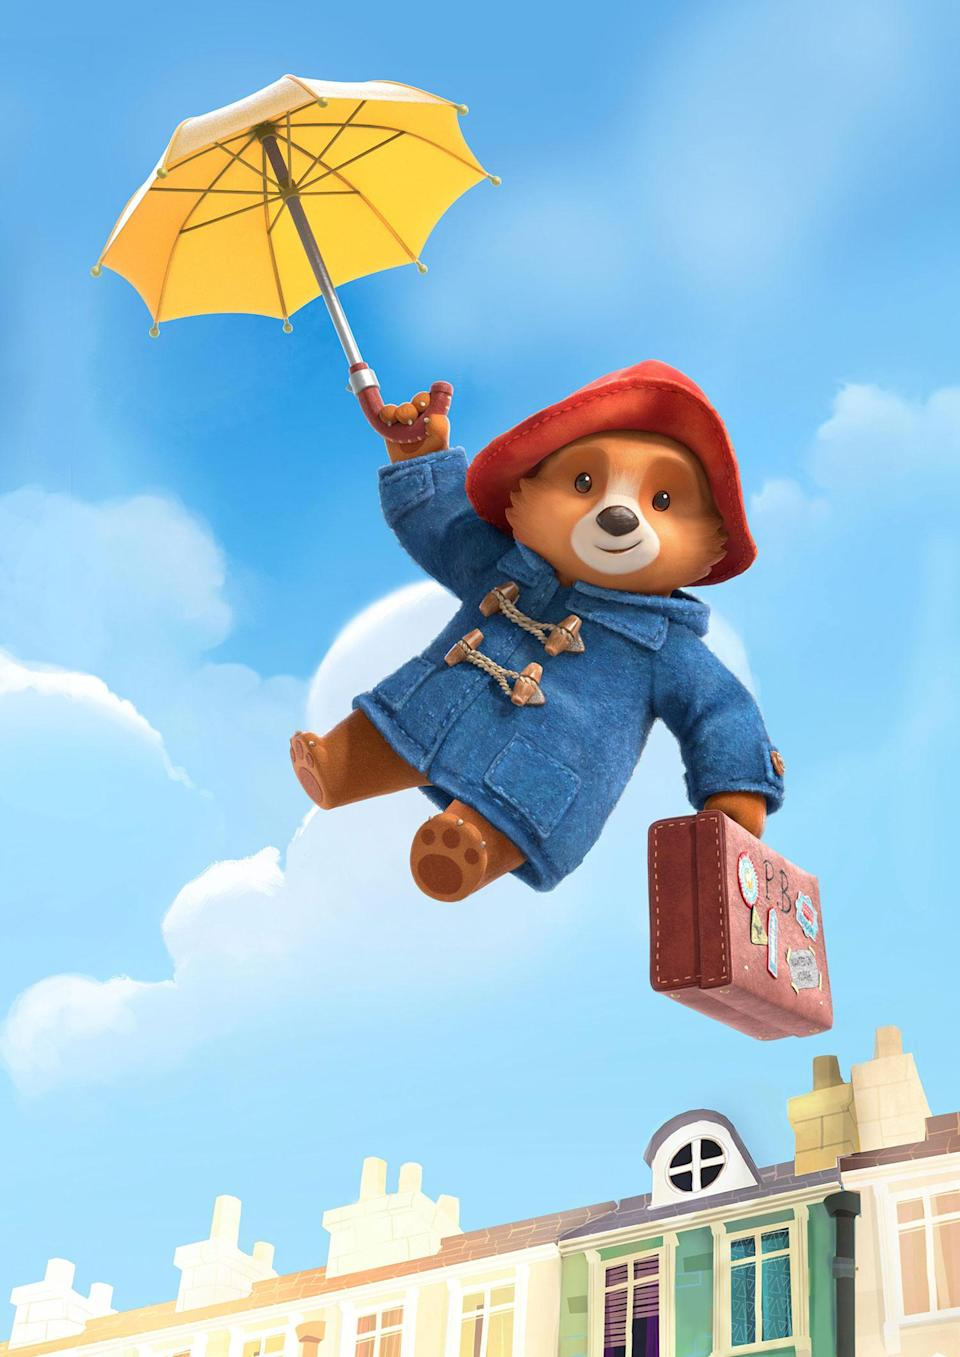 Here's the first look at the as-yet-untitled Paddington series coming to Nickelodeon. (Heyday Films/StudioCana/Blue Zoo)